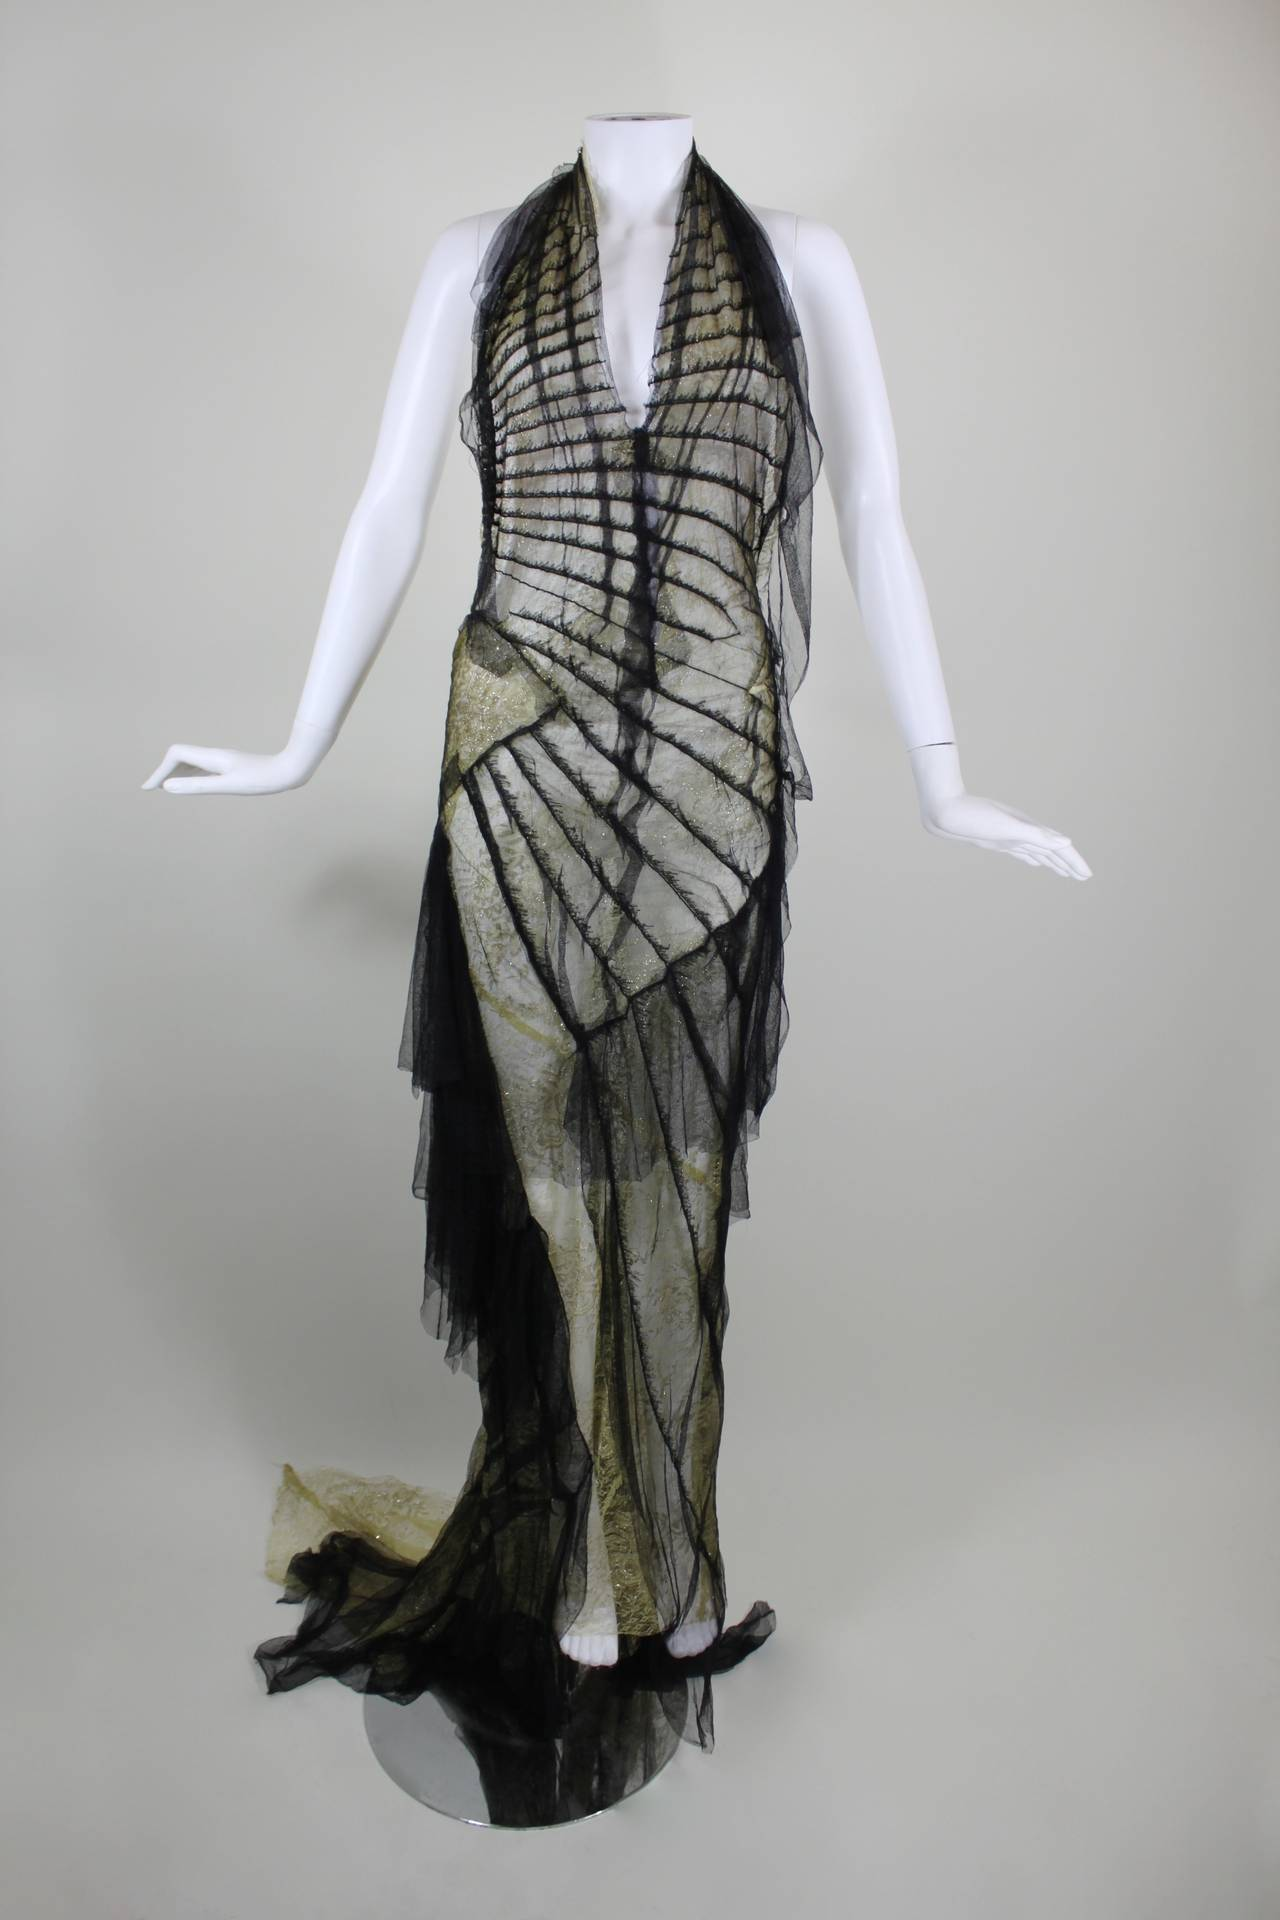 Roberto Cavalli Stunning Sheer Gold Lace and Cascading Black Tulle Gown 2